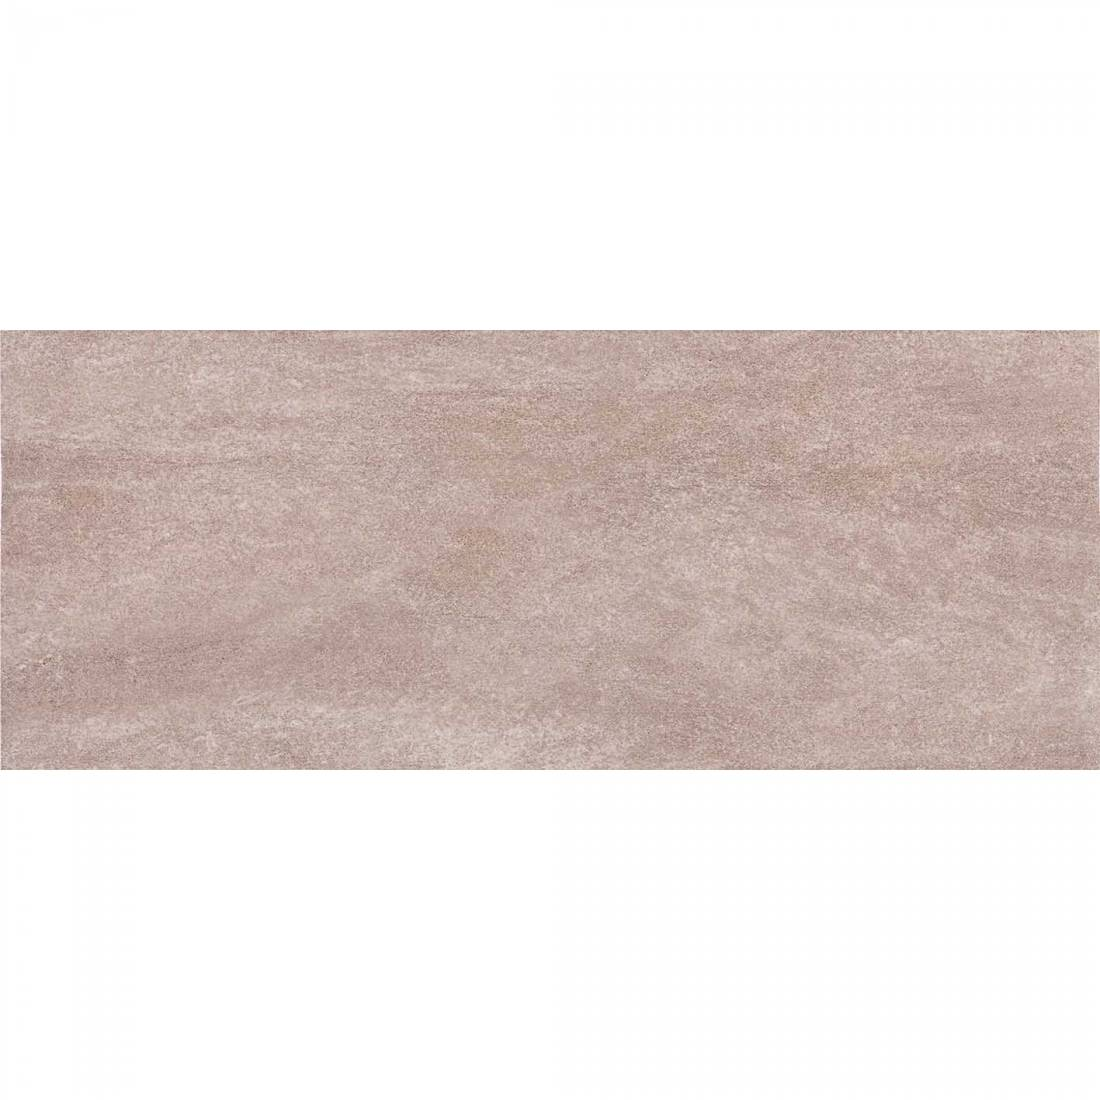 Mohave New 20x50 Grey Gloss 1